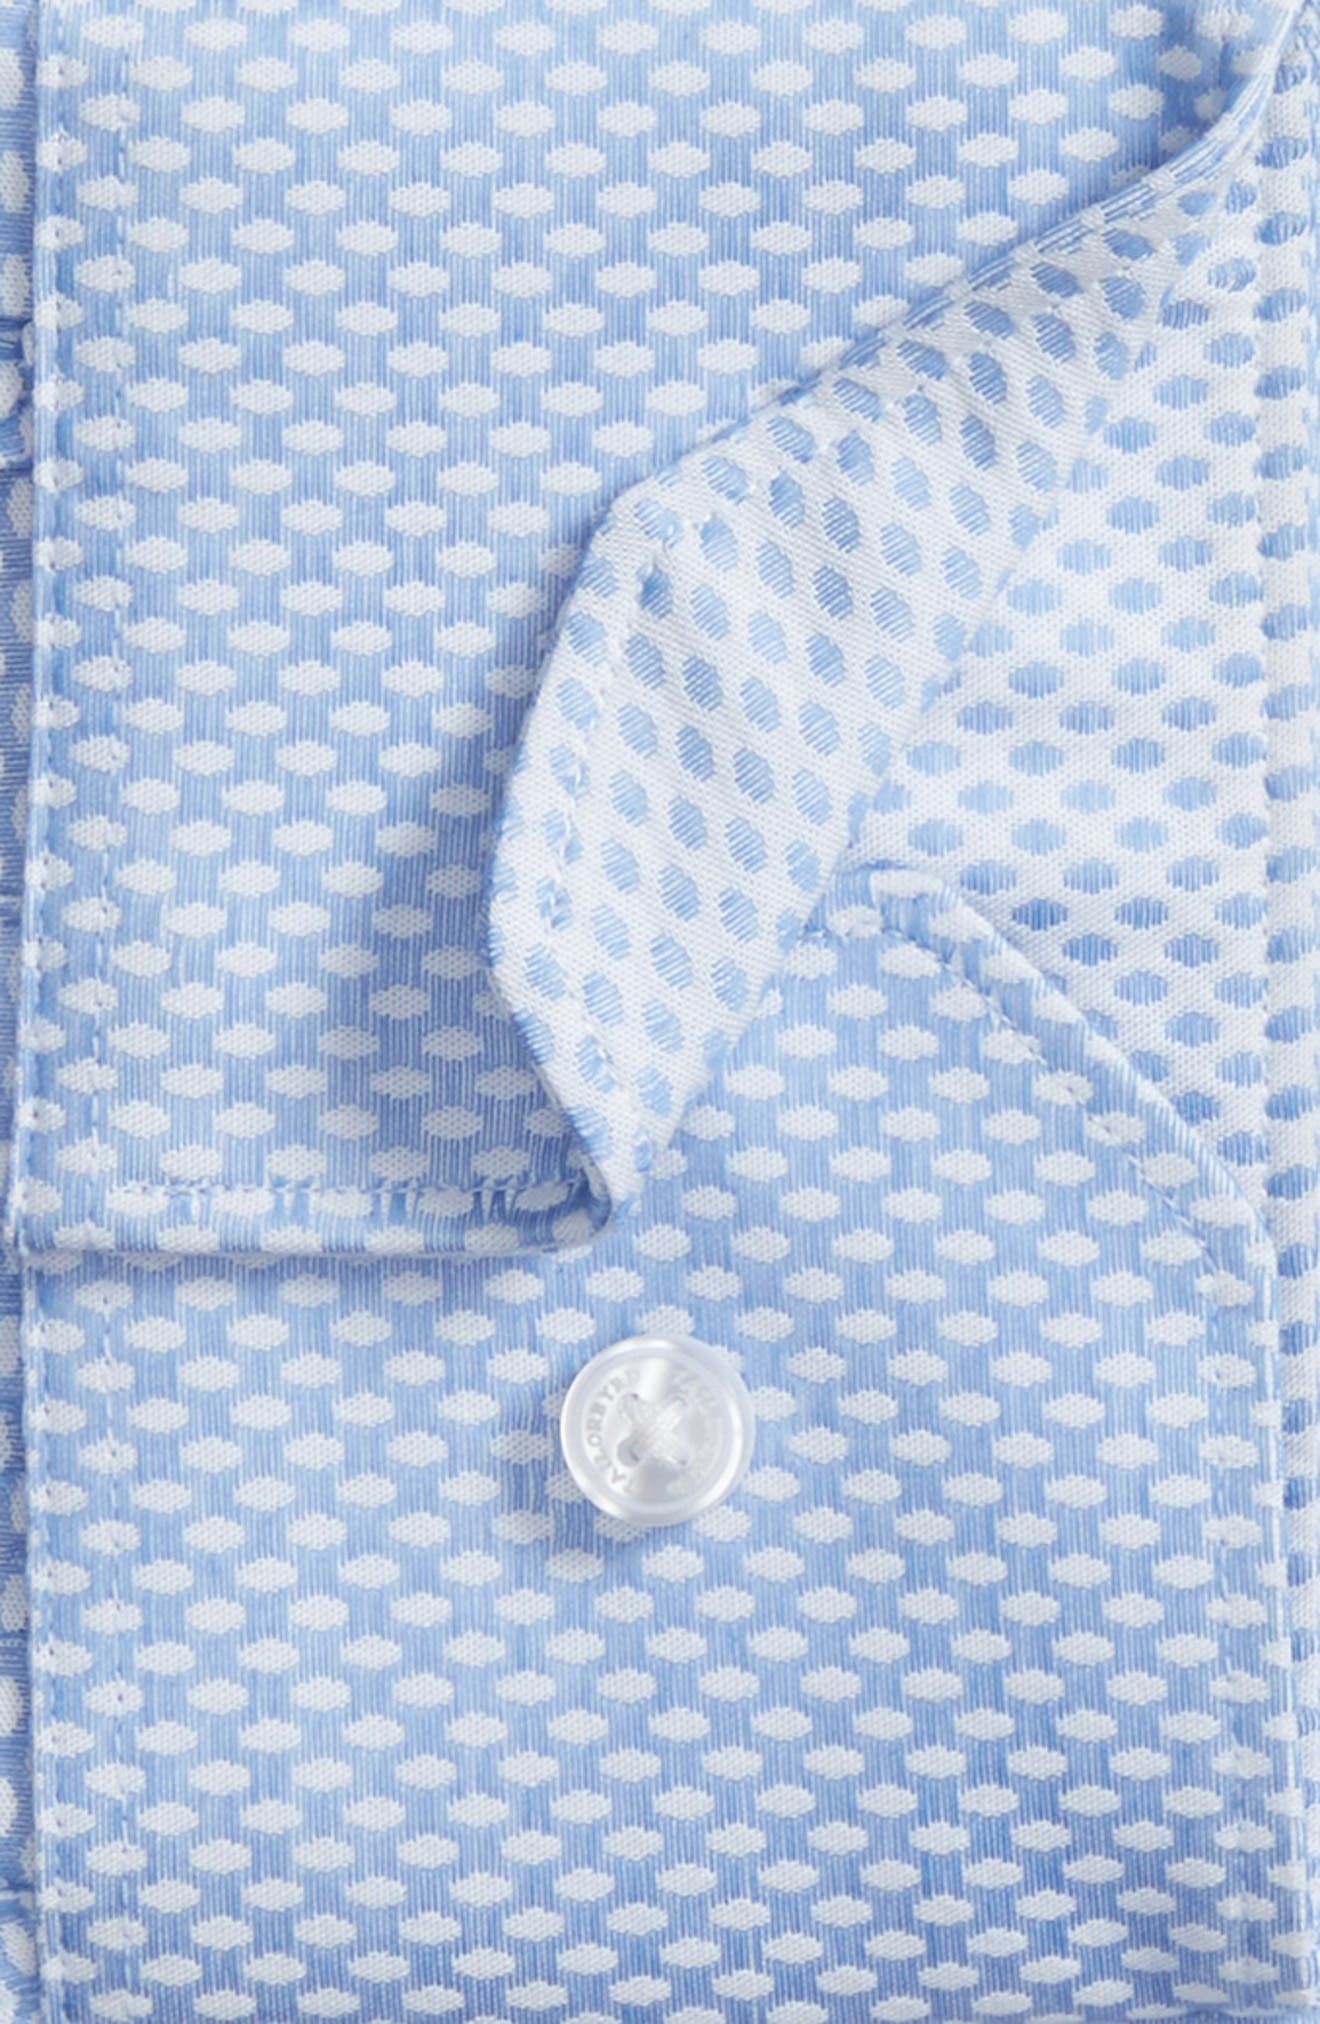 Holmes Trim Fit Dot Dress Shirt,                             Alternate thumbnail 5, color,                             Light Blue